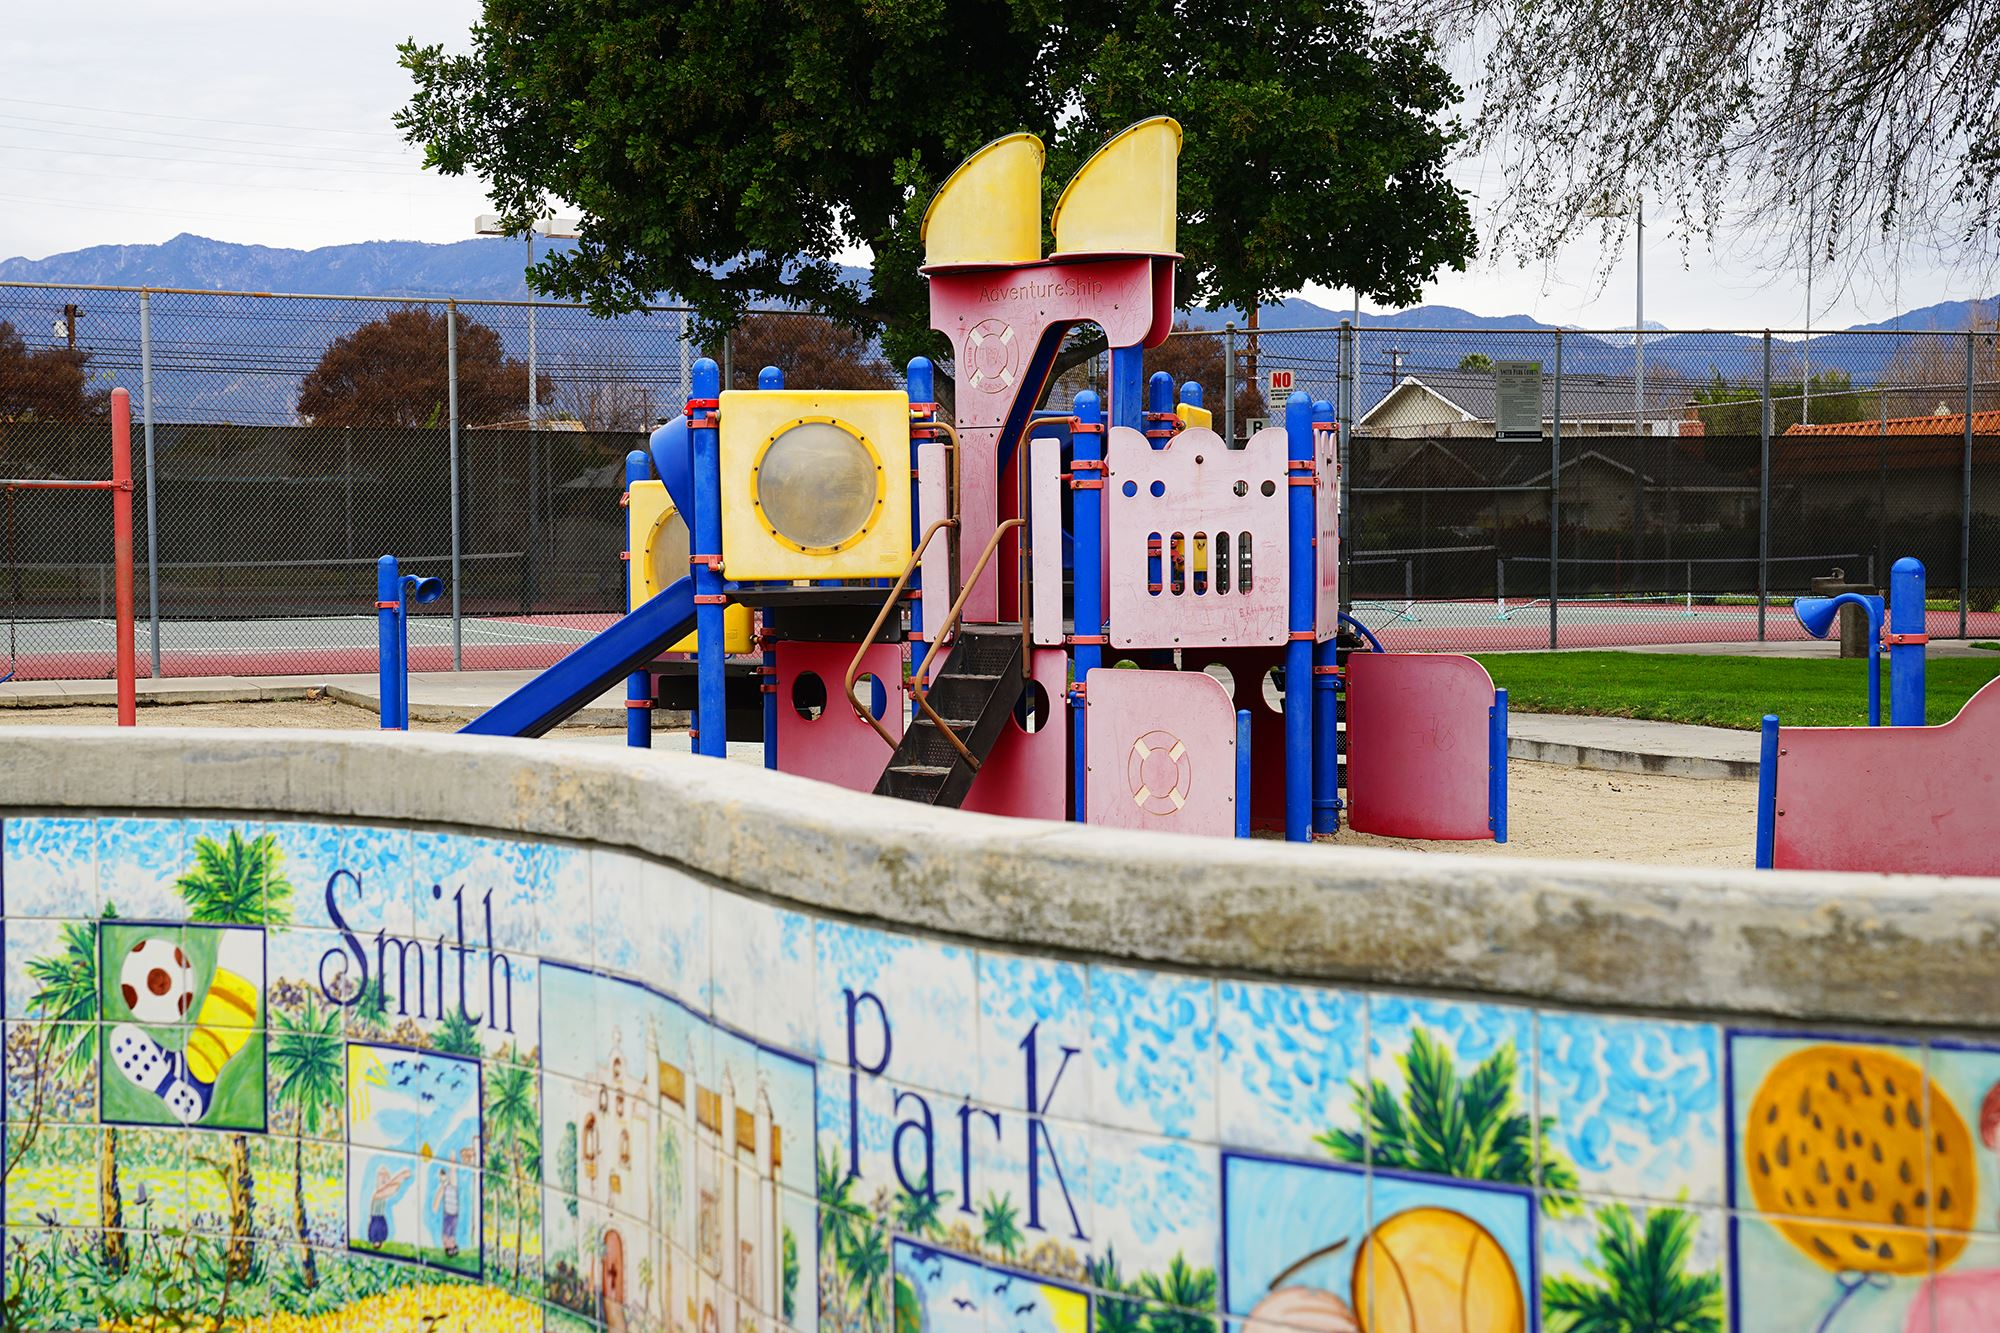 Smith Park playground deconstruction to take place February 19